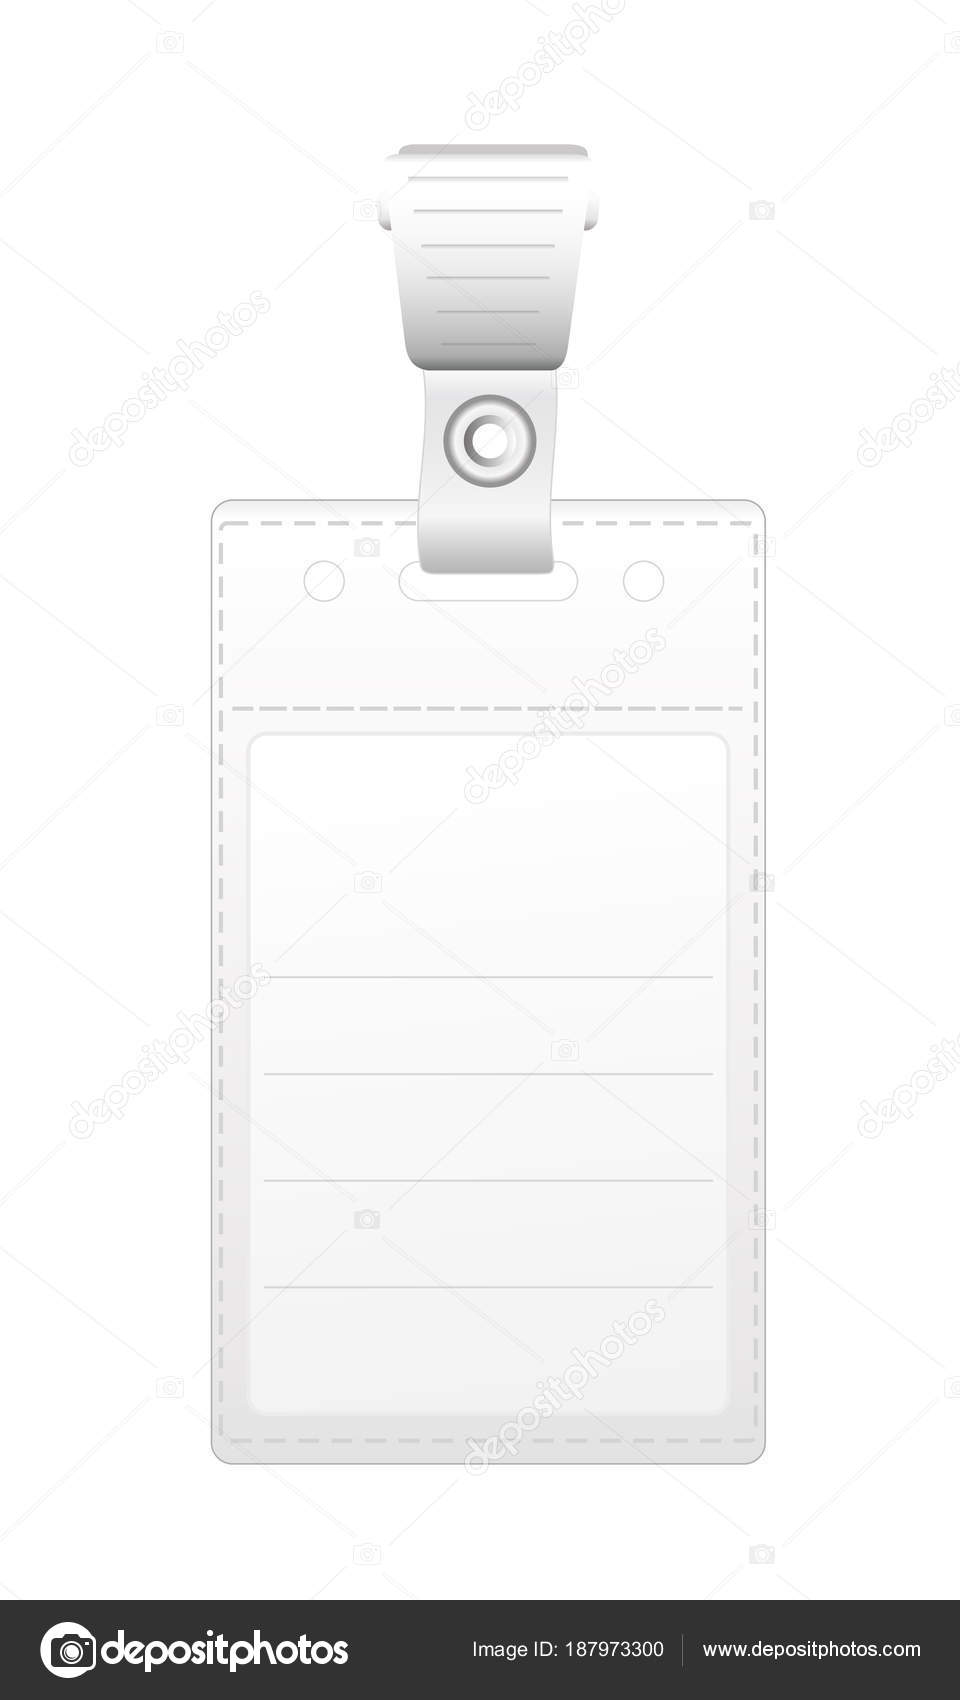 personal id card template